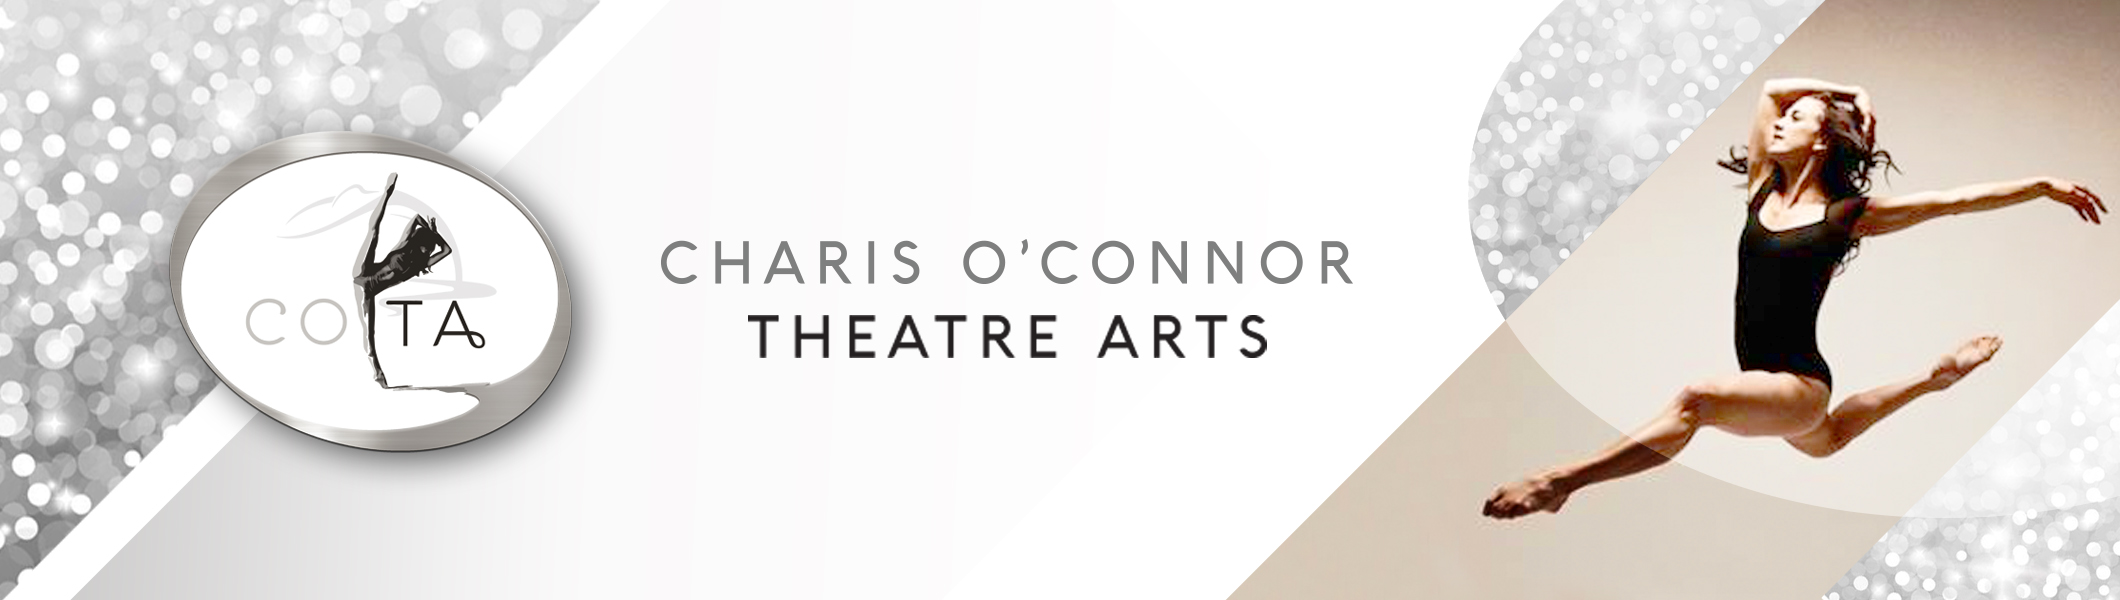 Charis O'Connor Theatre Arts Logo